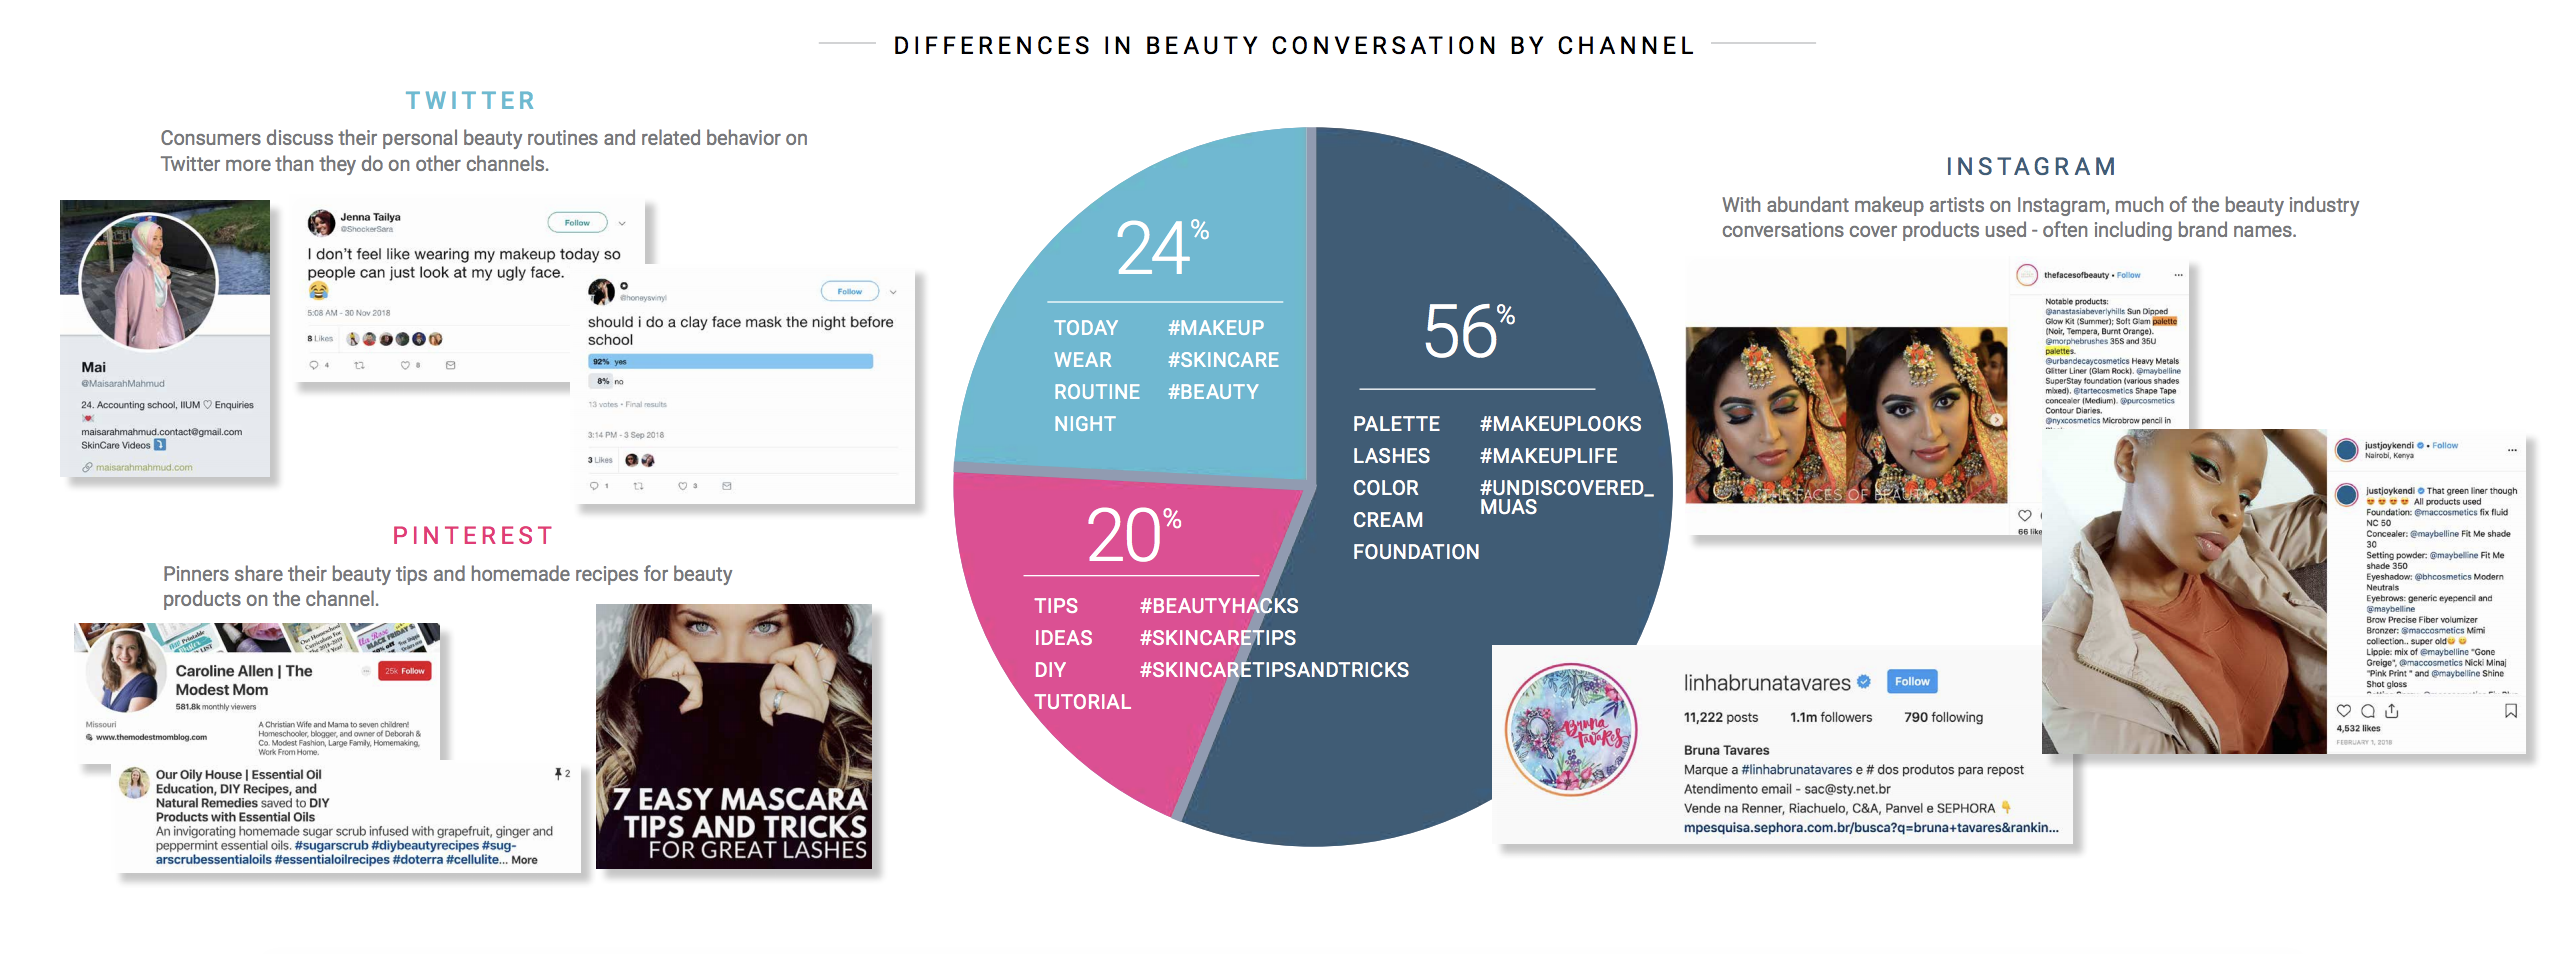 social media channel distribution for beauty and cosmetics using social listening